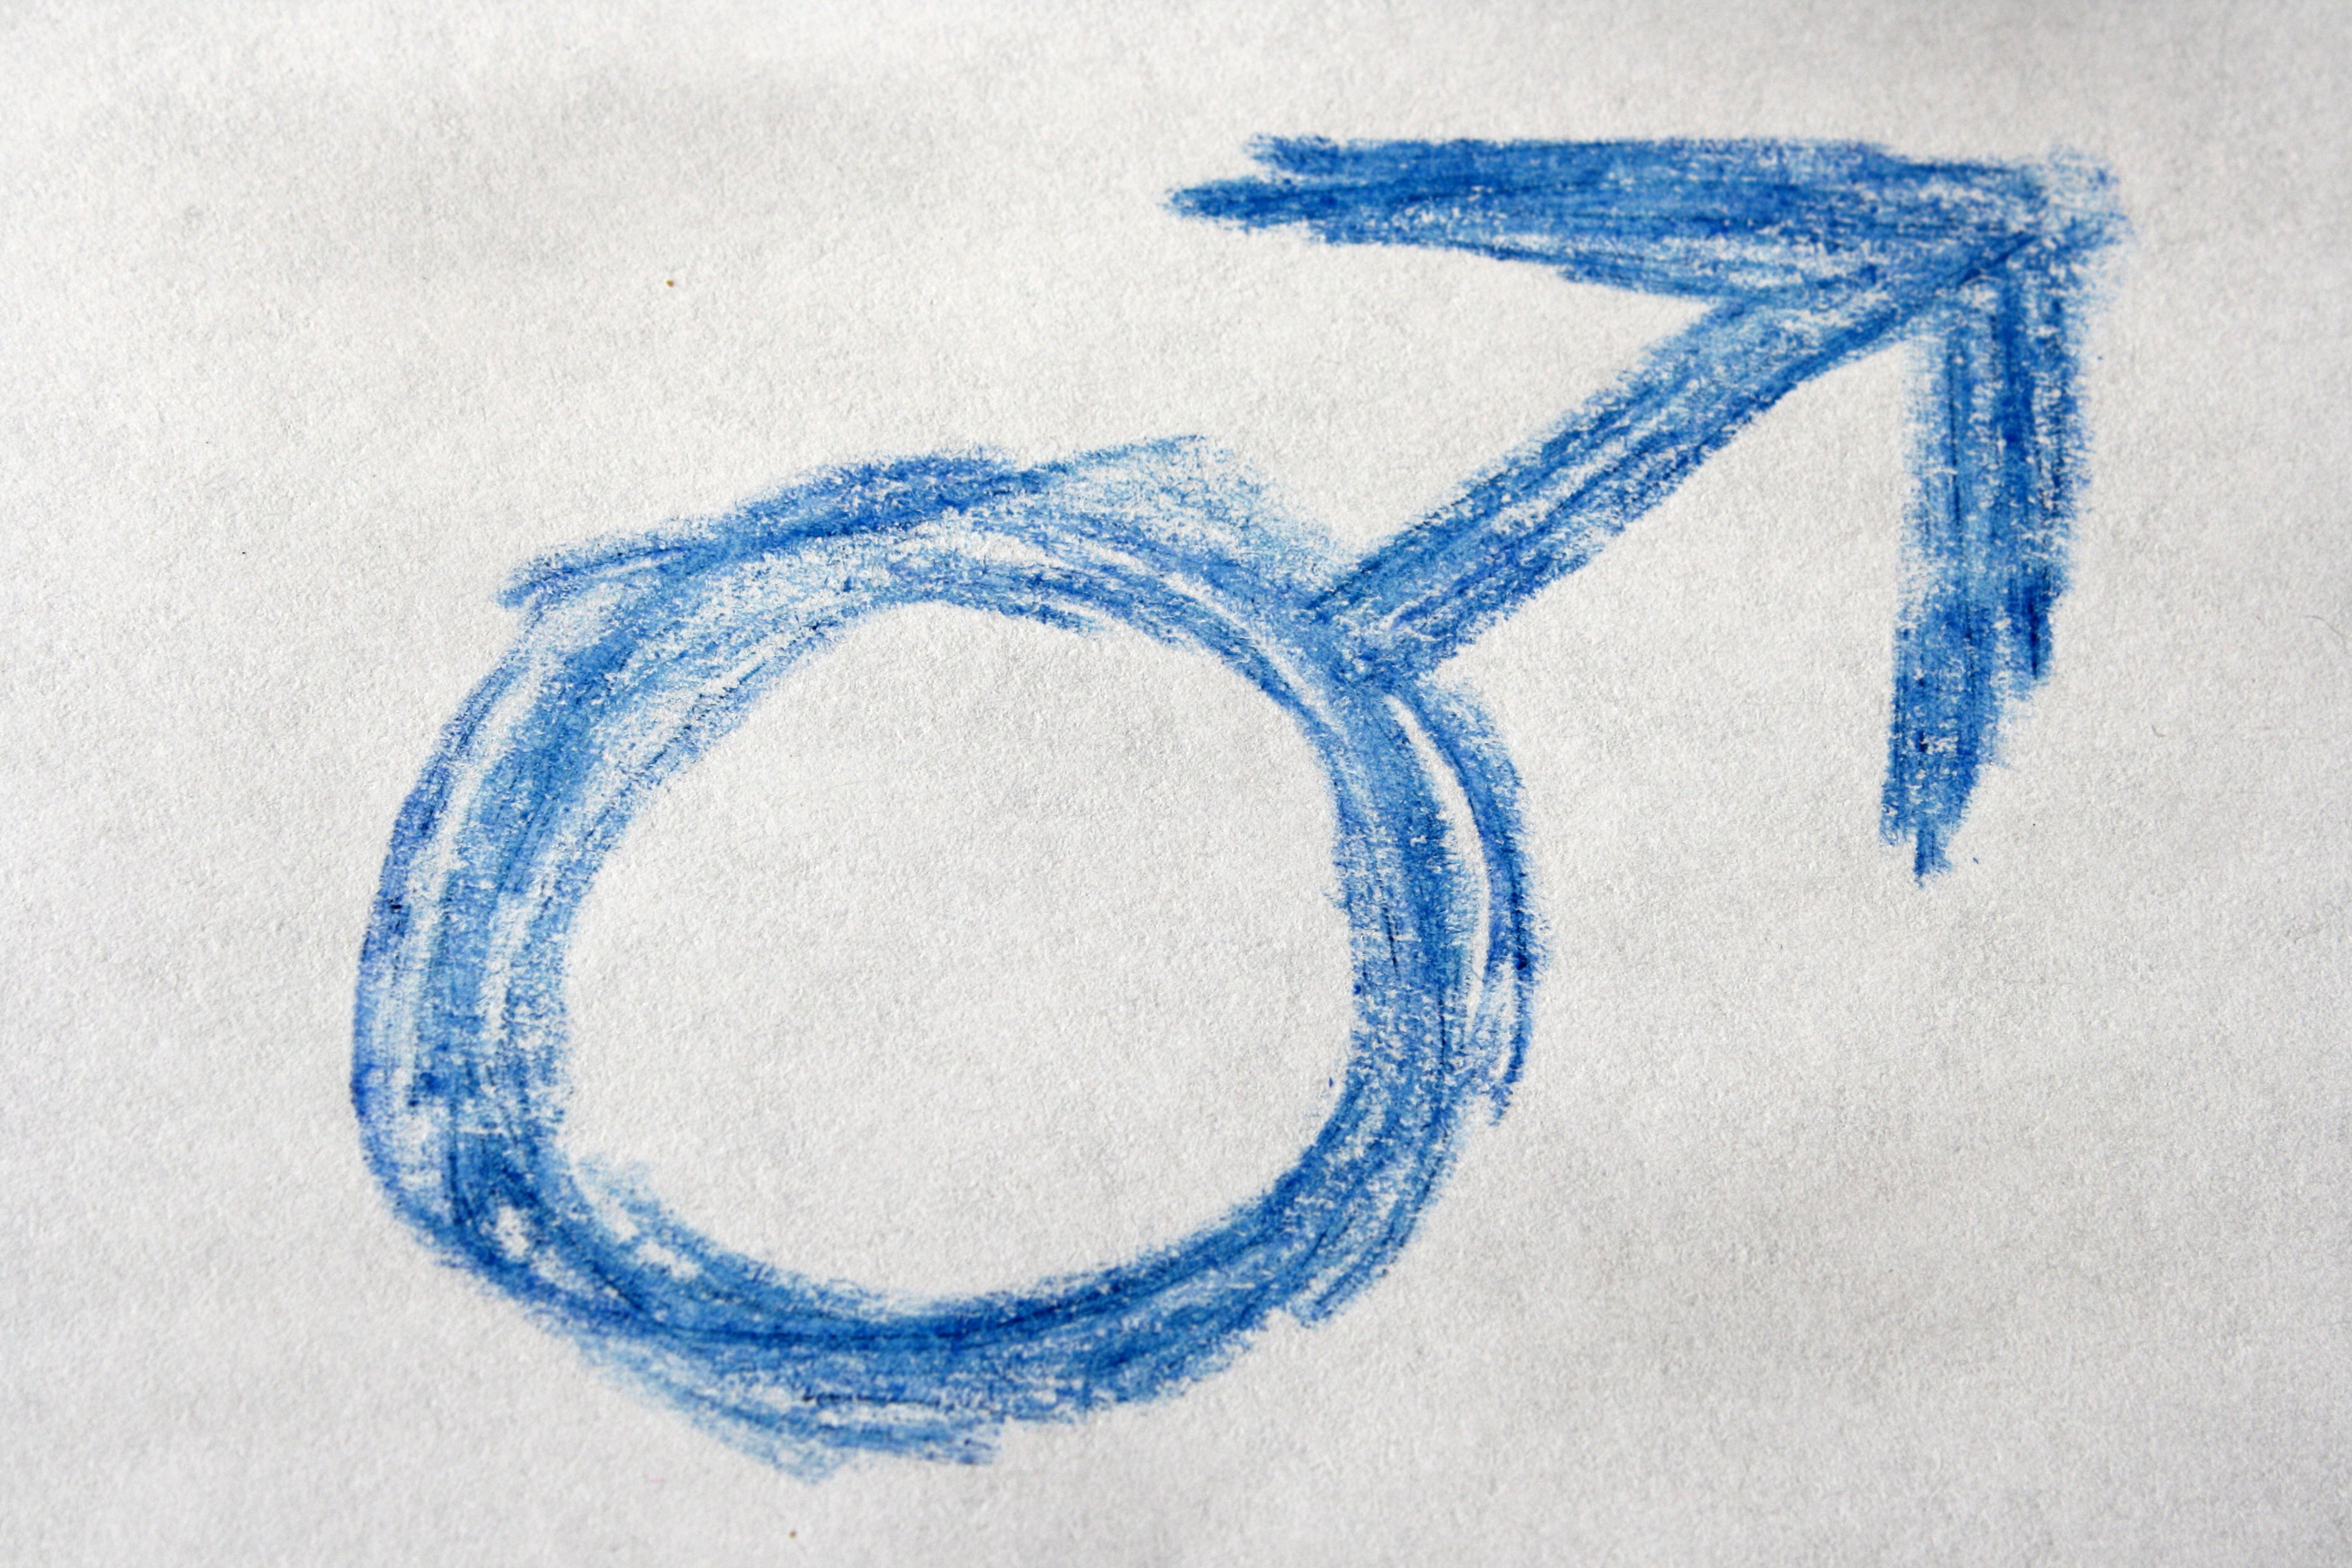 Blue Crayon Drawn Male Gender Sign Or Symbol Picture Free